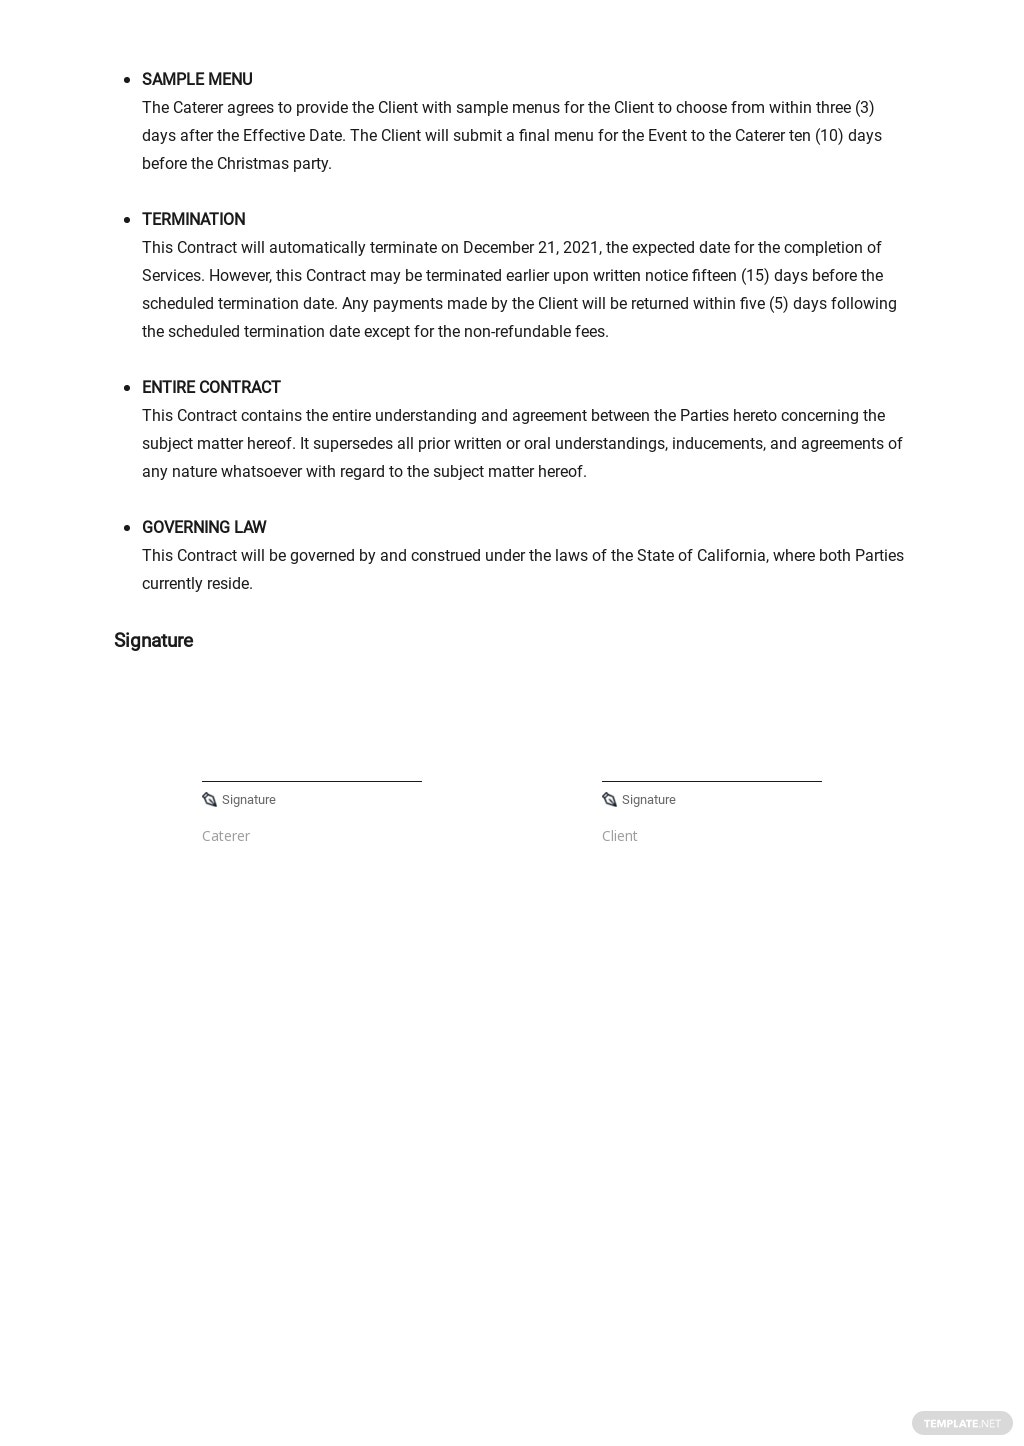 Restaurant Catering Contract Template [Free PDF] - Google Docs, Word, Apple Pages